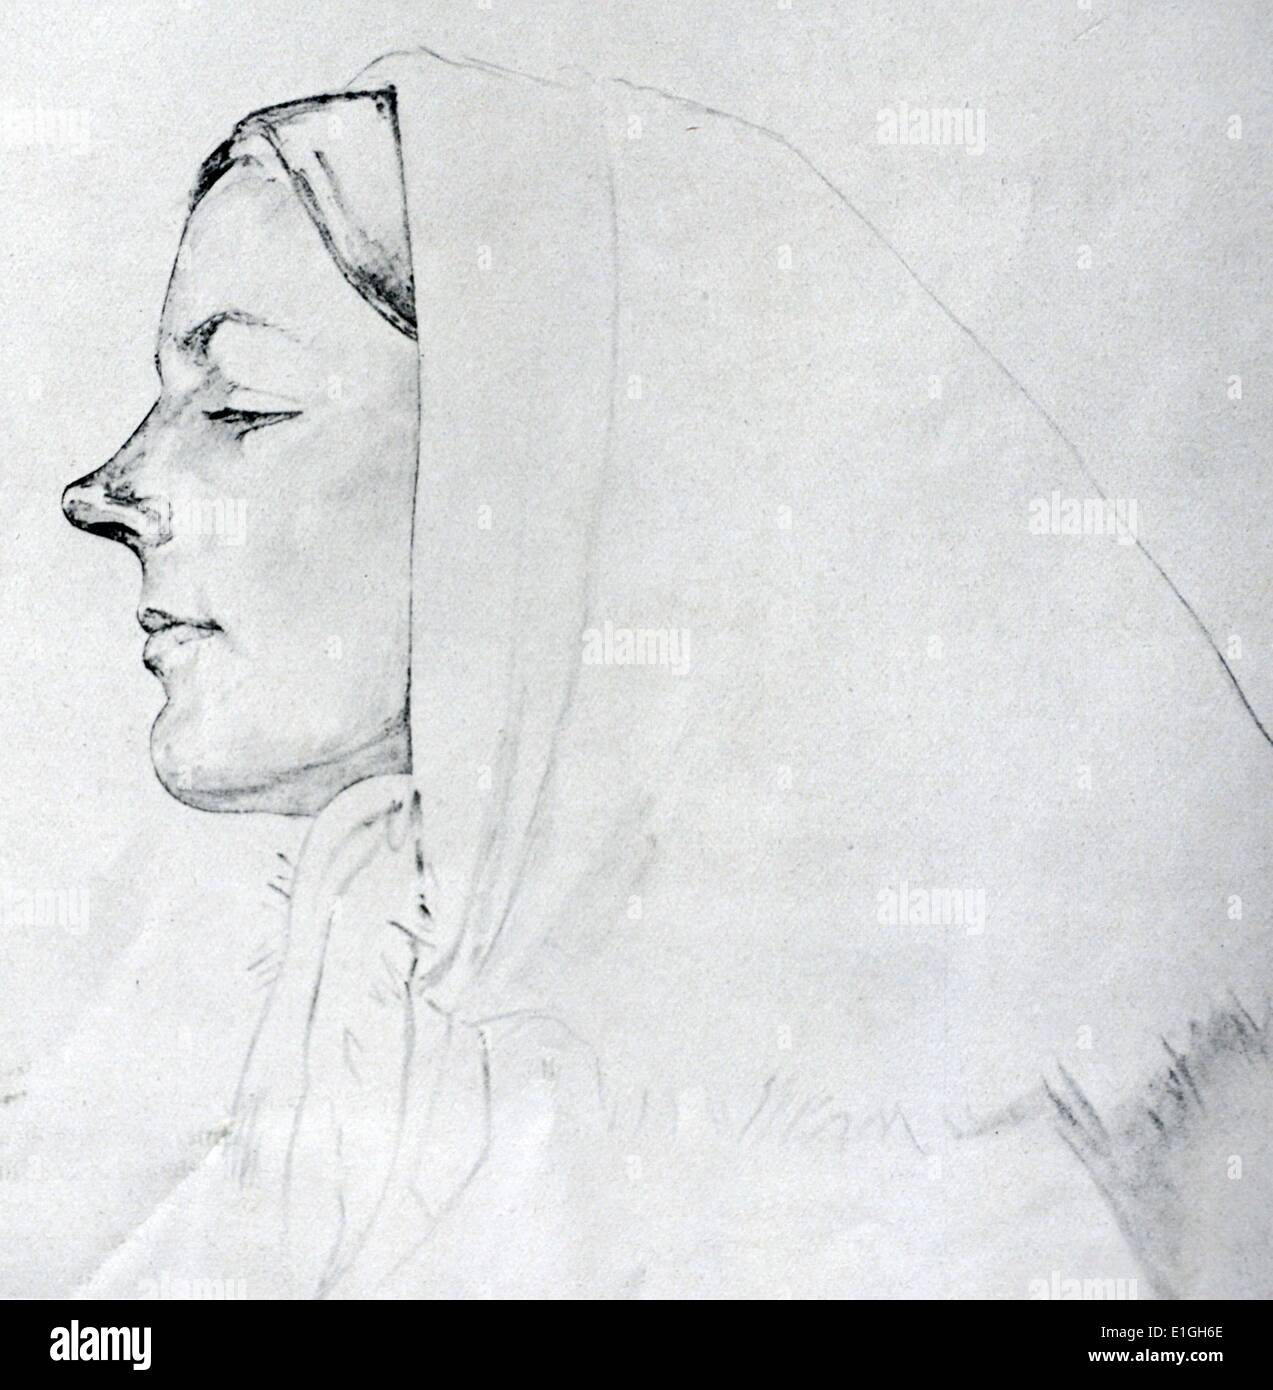 portrait of augusta Bjornson by Olaf Leonhard Gulbransson (26 May 1873 in Oslo – 18 September 1958 in Tegernsee, Germany). he - Stock Image